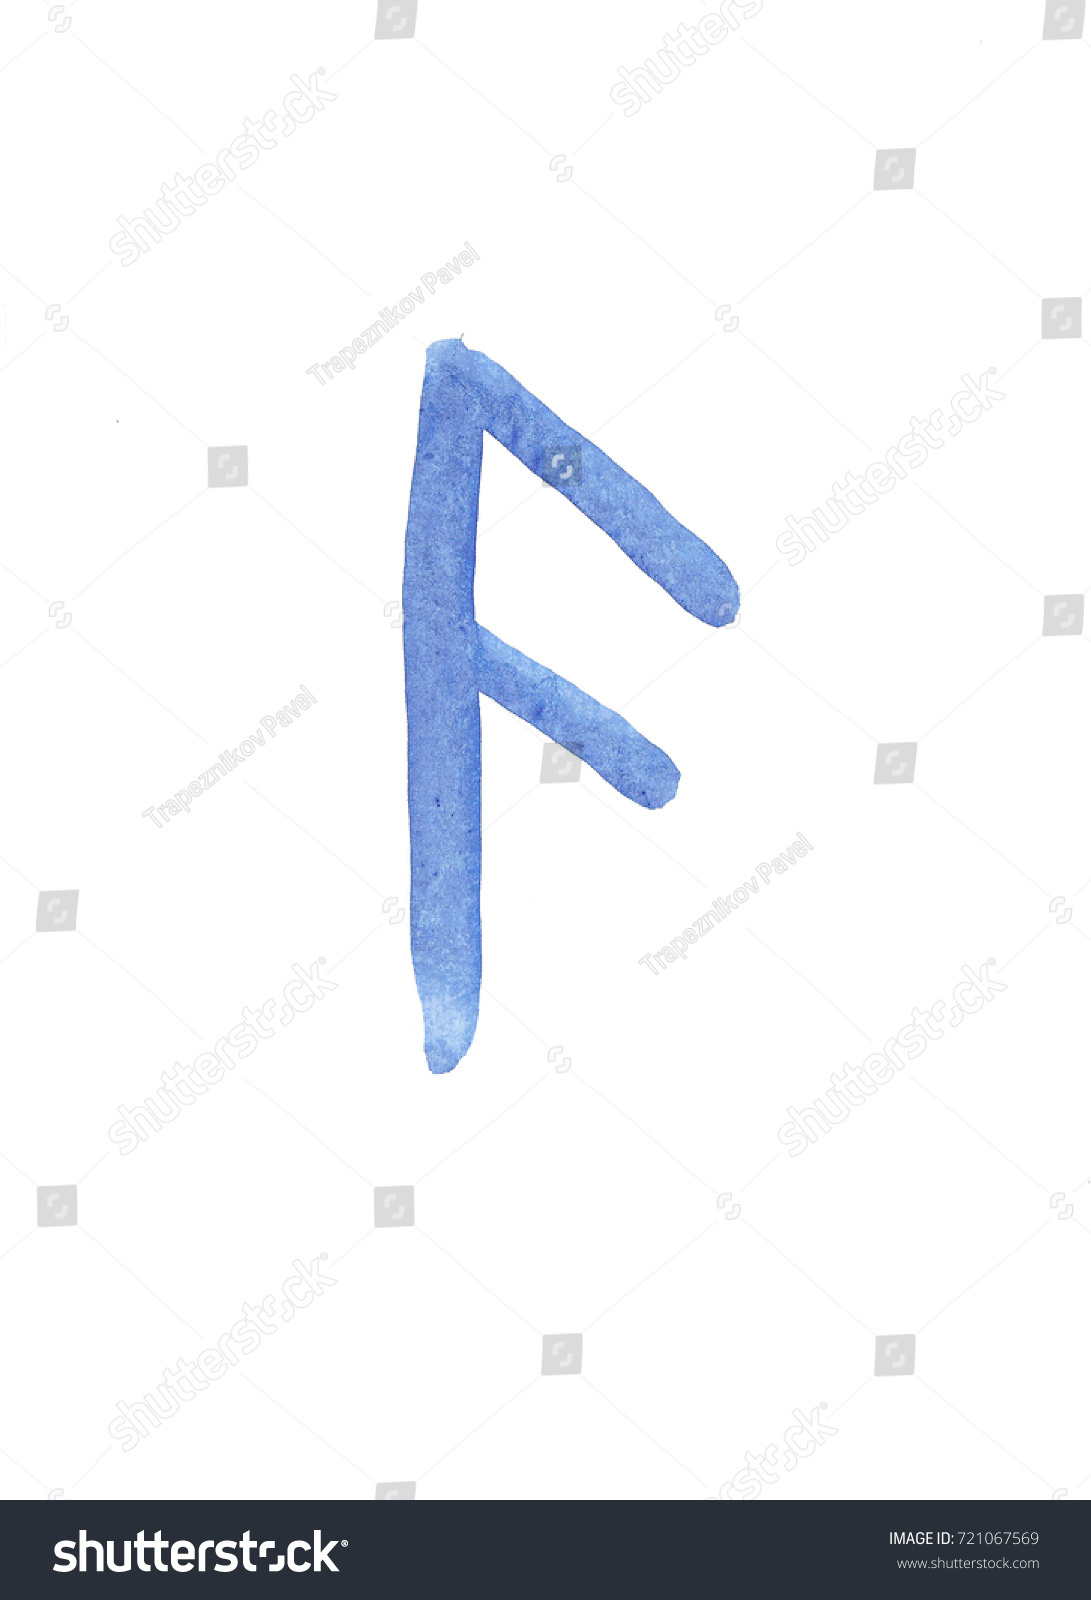 Abstract Watercolor Hand Drawn Magical Rune Stock Illustration